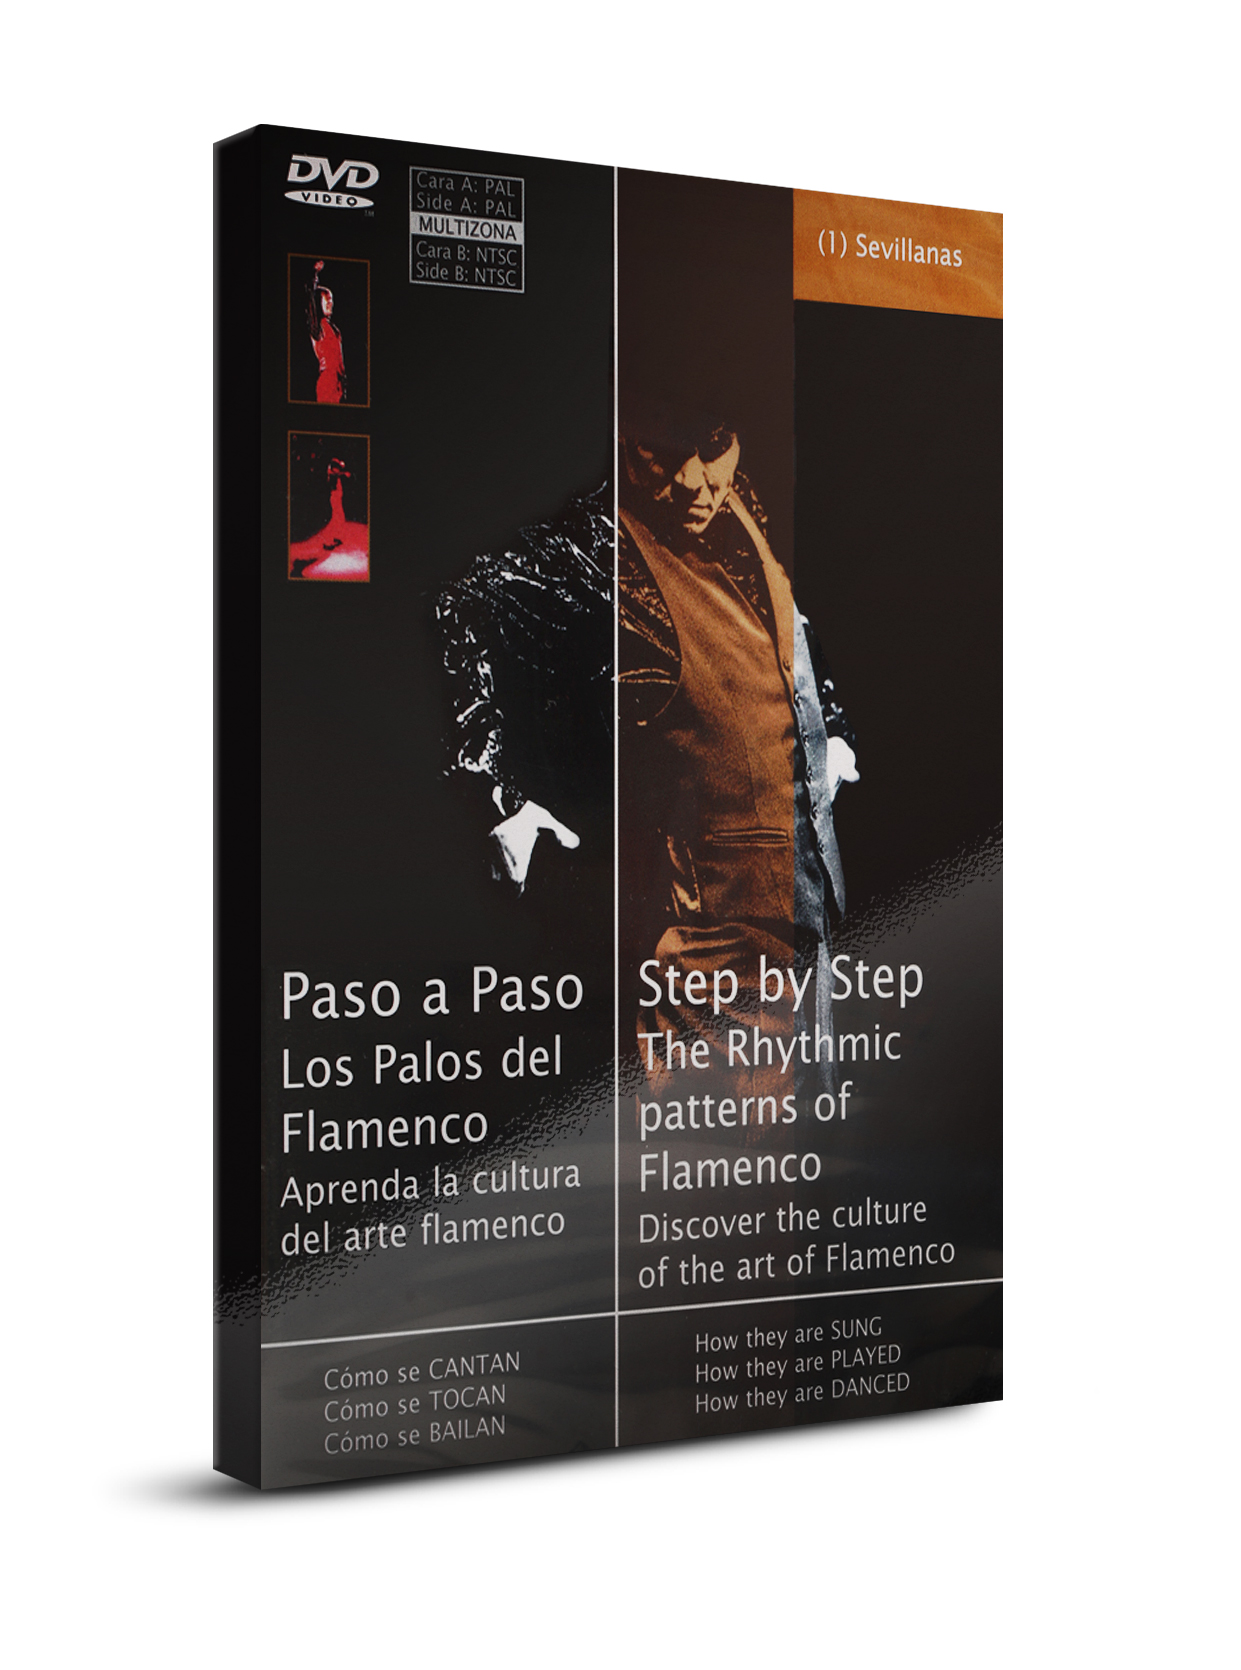 Flamenco dance classes Sevillanas DVD